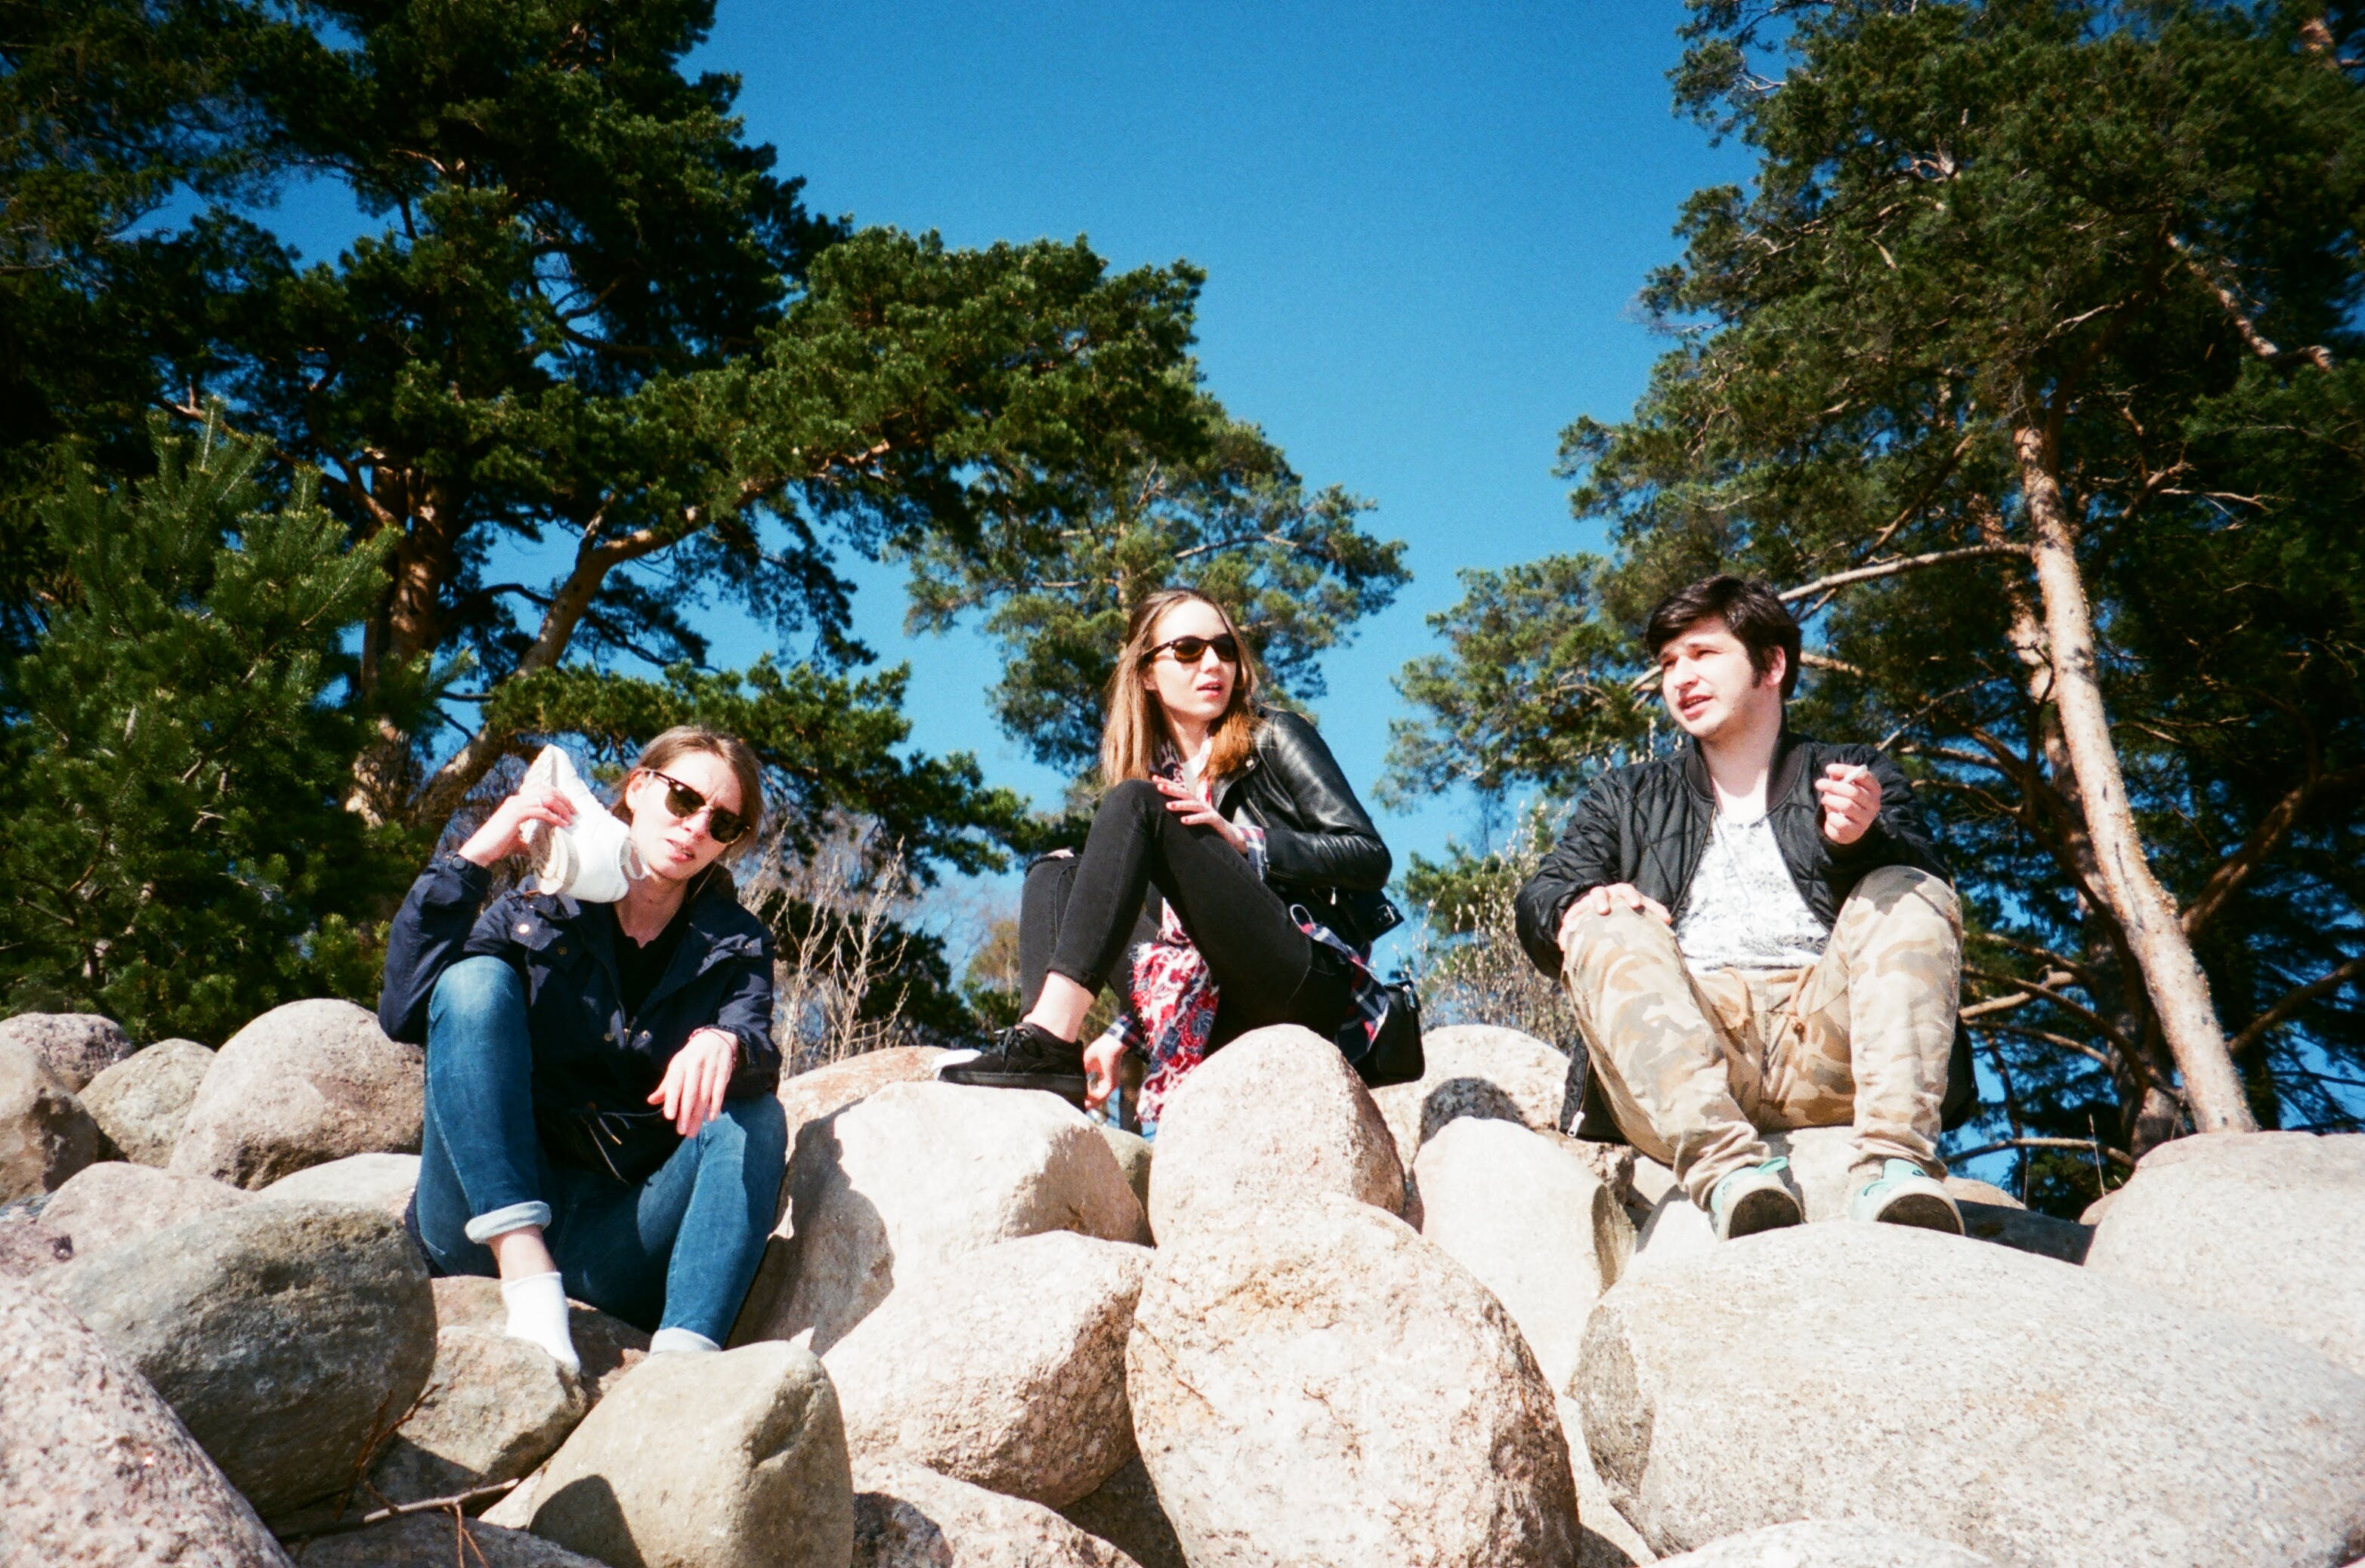 Three Person Sitting on Rock Formation